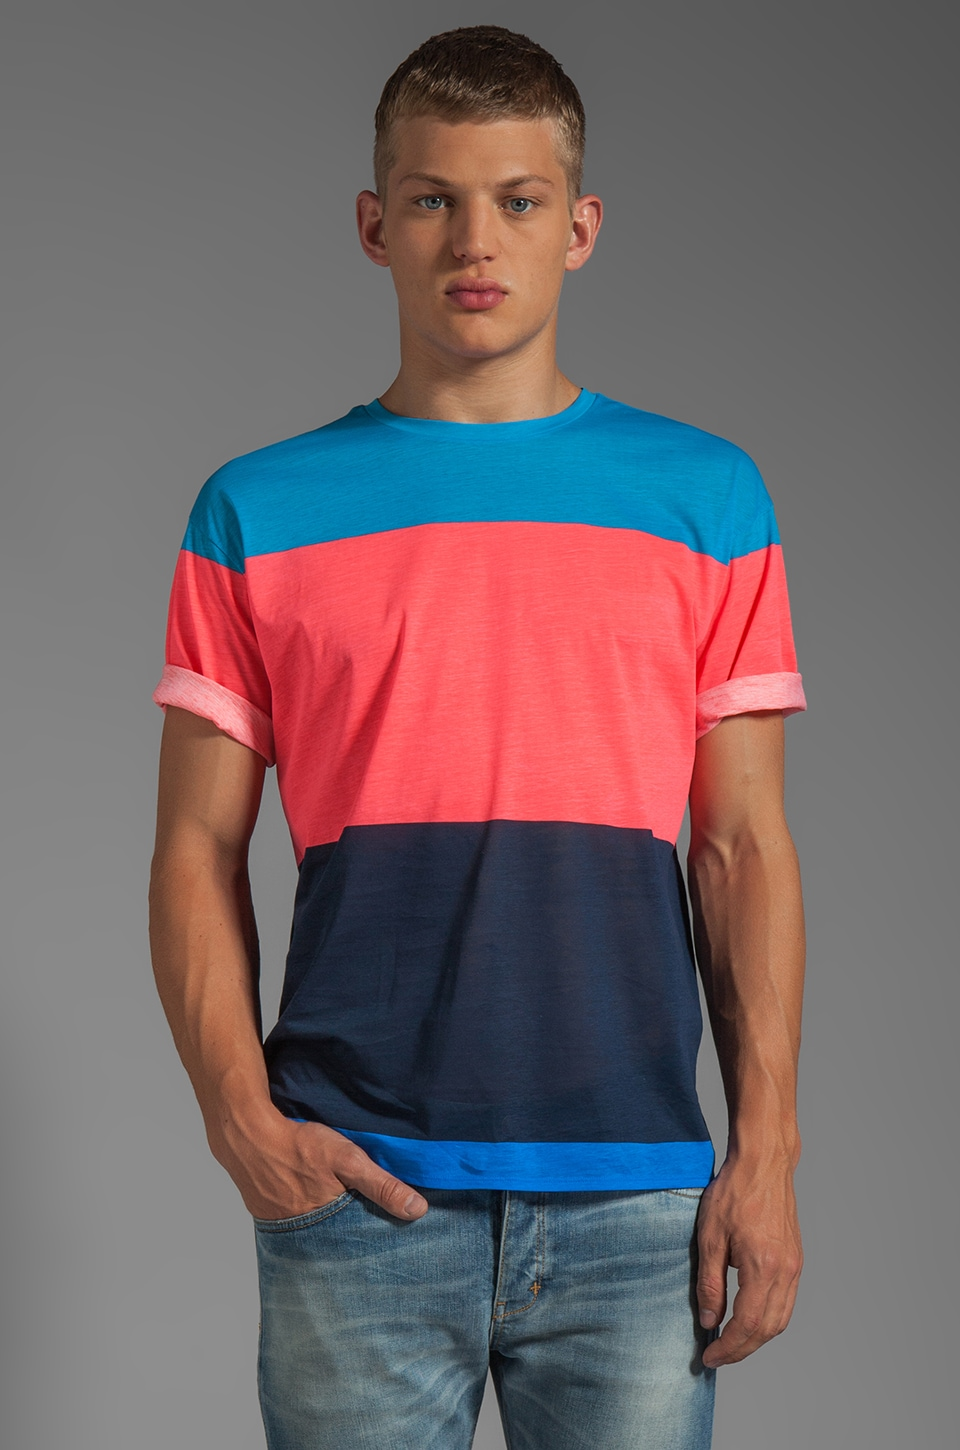 Marc by Marc Jacobs Patrick Stripe Tee in Atomic Blue Multi